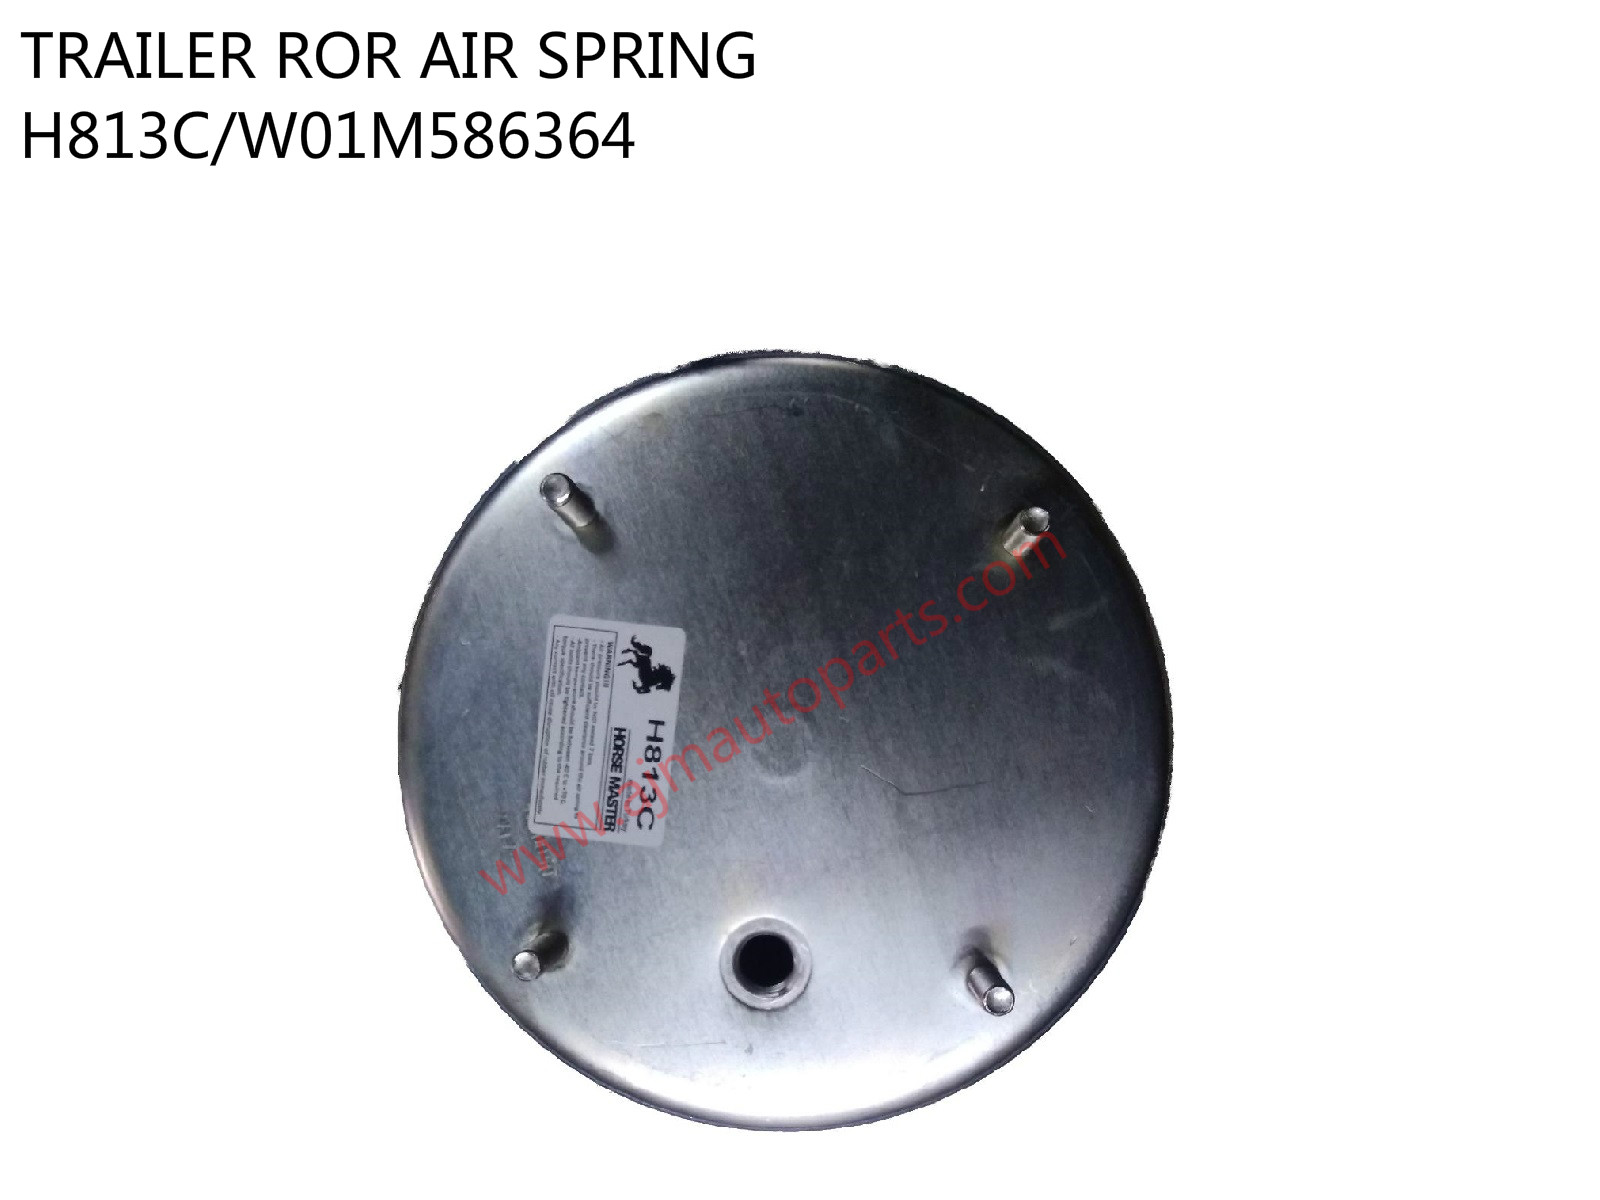 TRAILER ROR AIR SPRING-H813